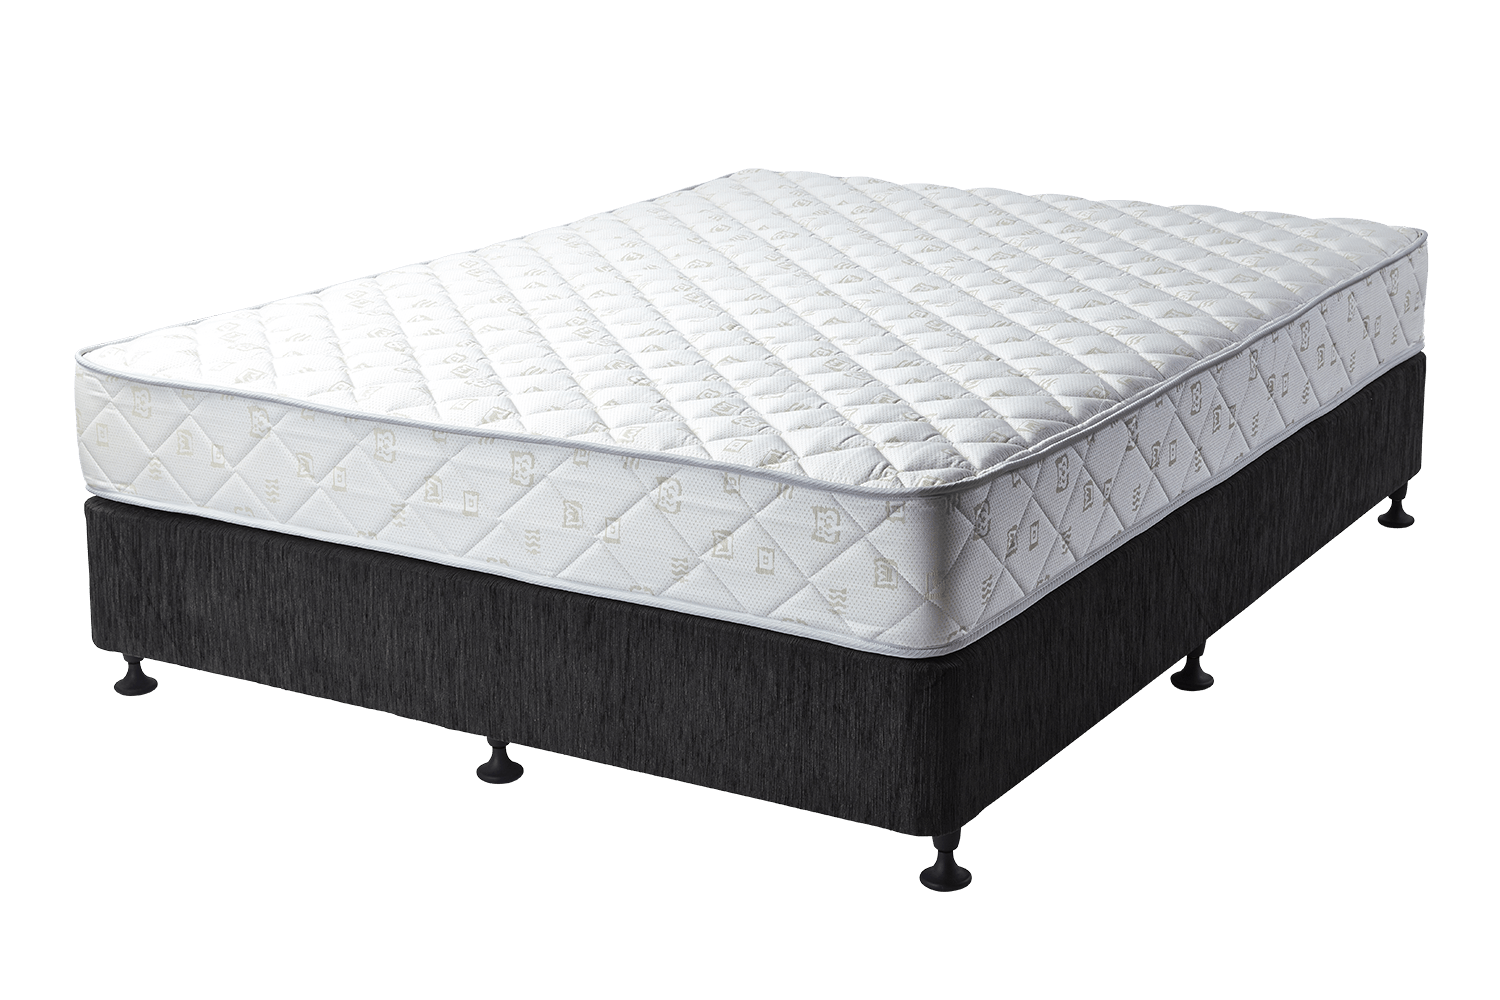 Tips for Buying High-Quality Mattress